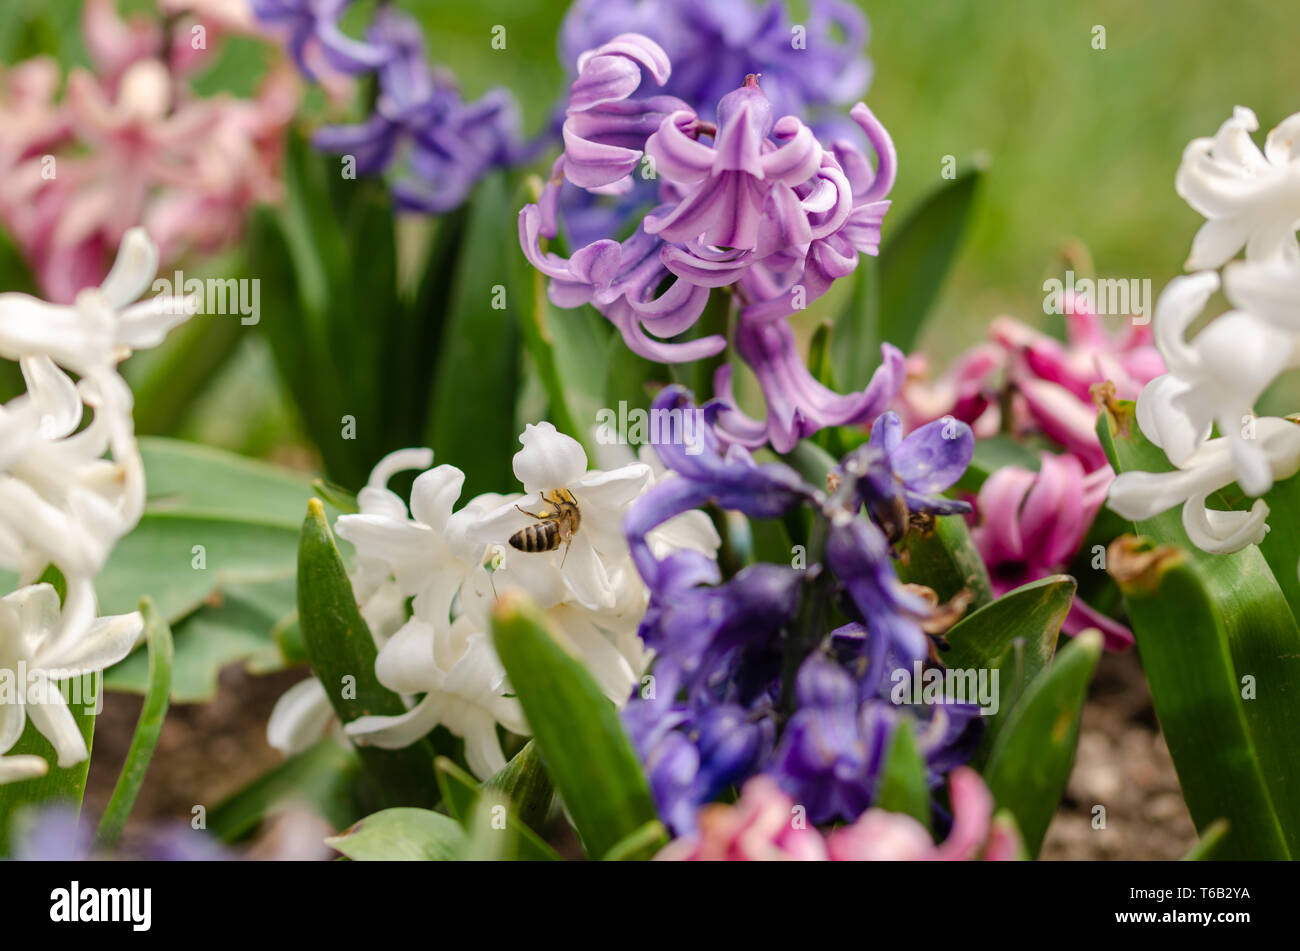 Honey bee is  collecting pollen on the hyacinth flowers. - Stock Image